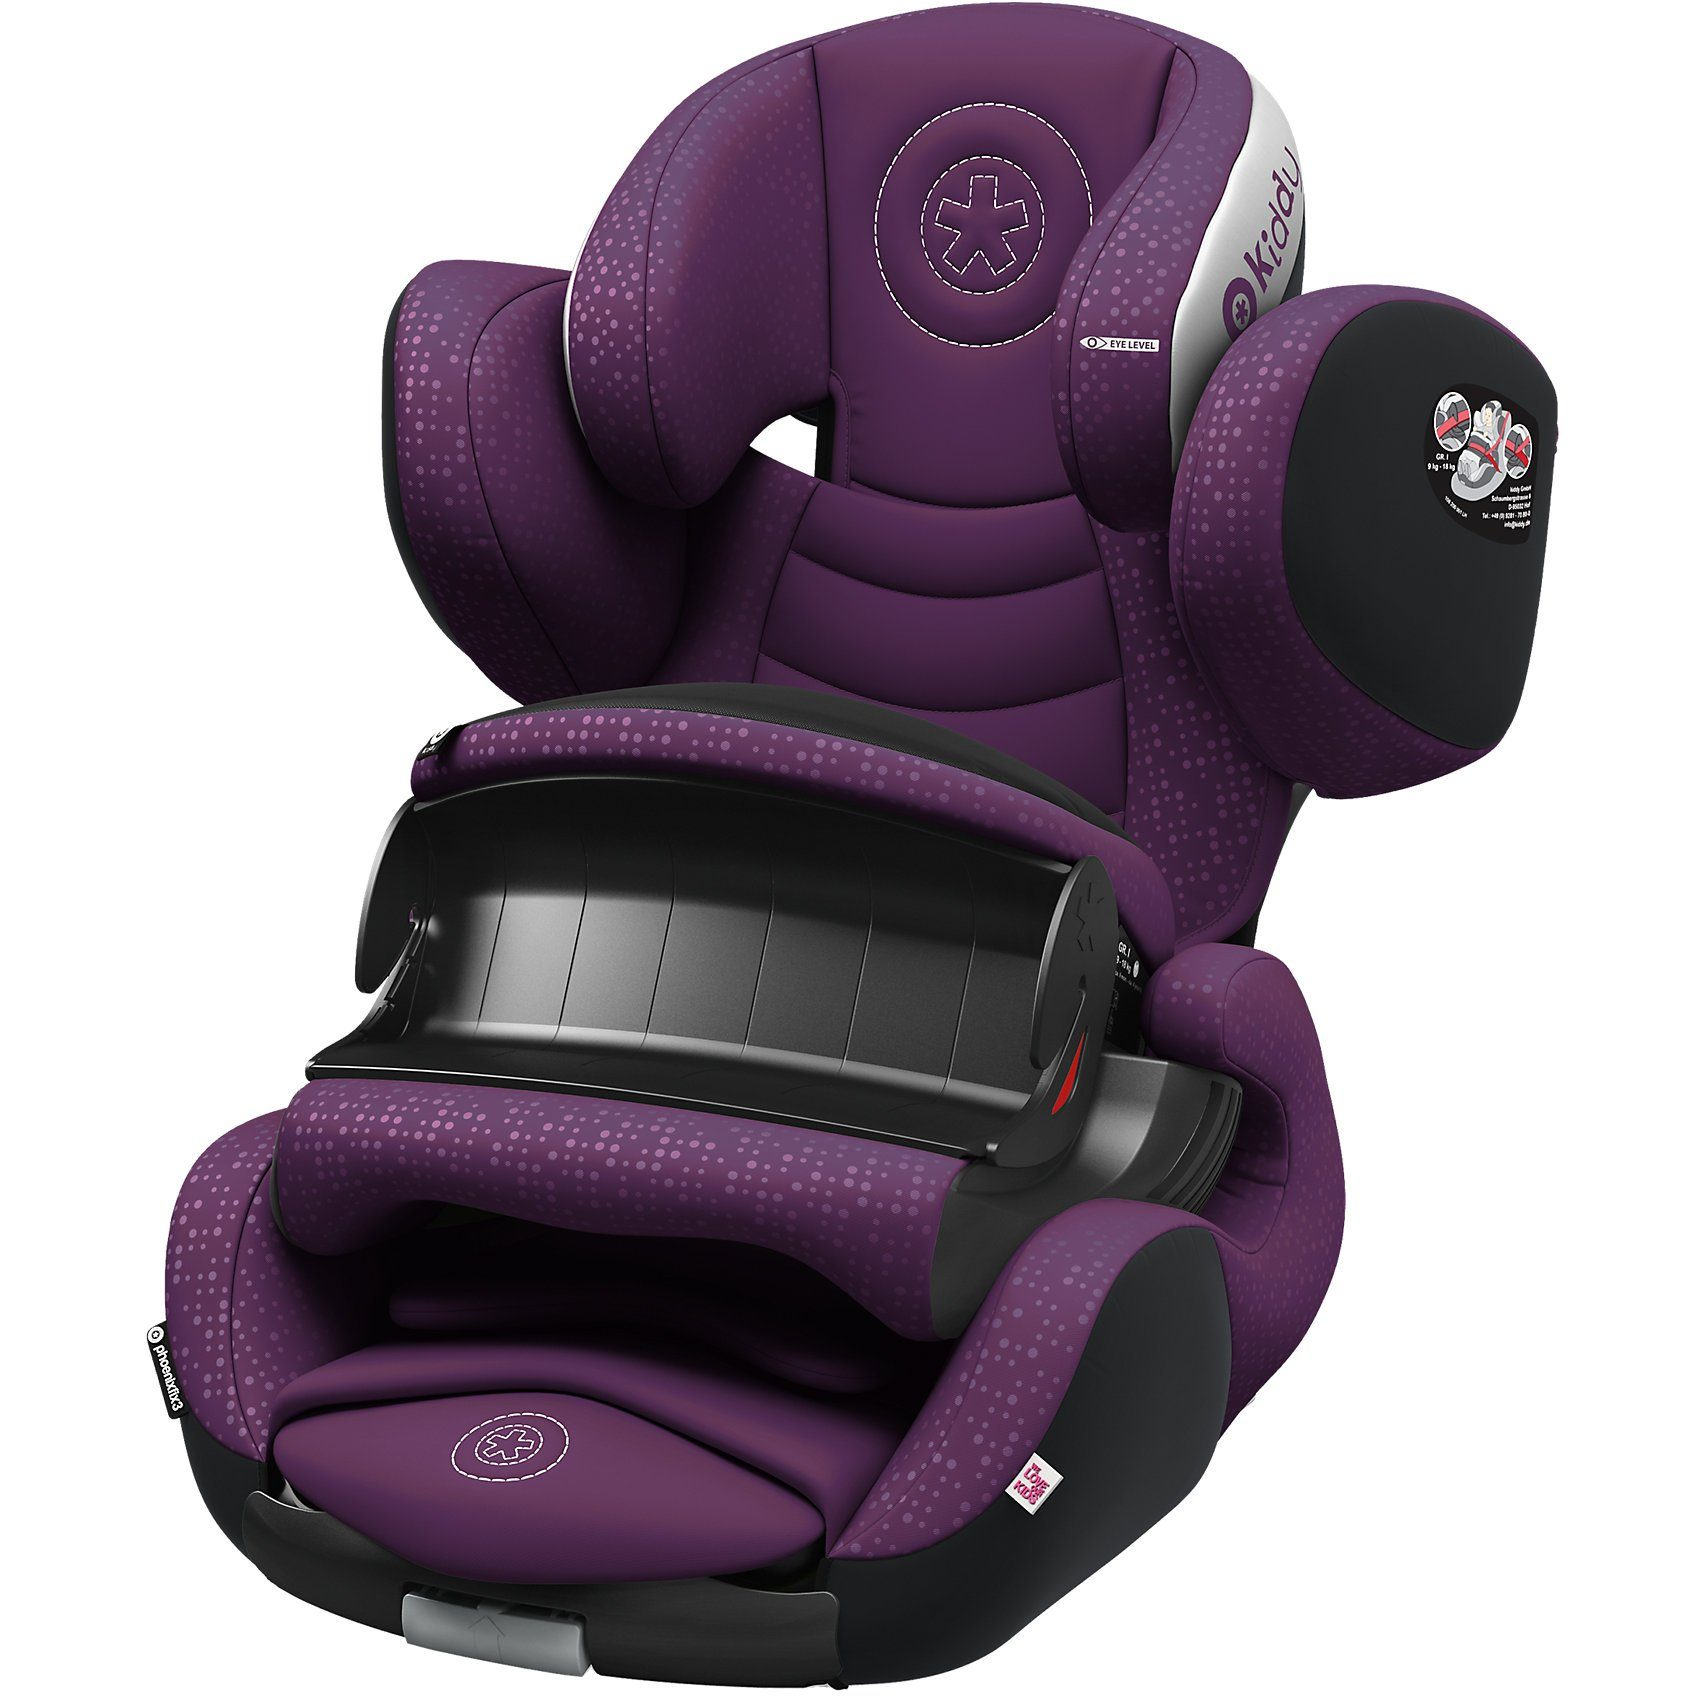 Kiddy Auto-Kindersitz Phoenixfix 3, royal purple, 2017